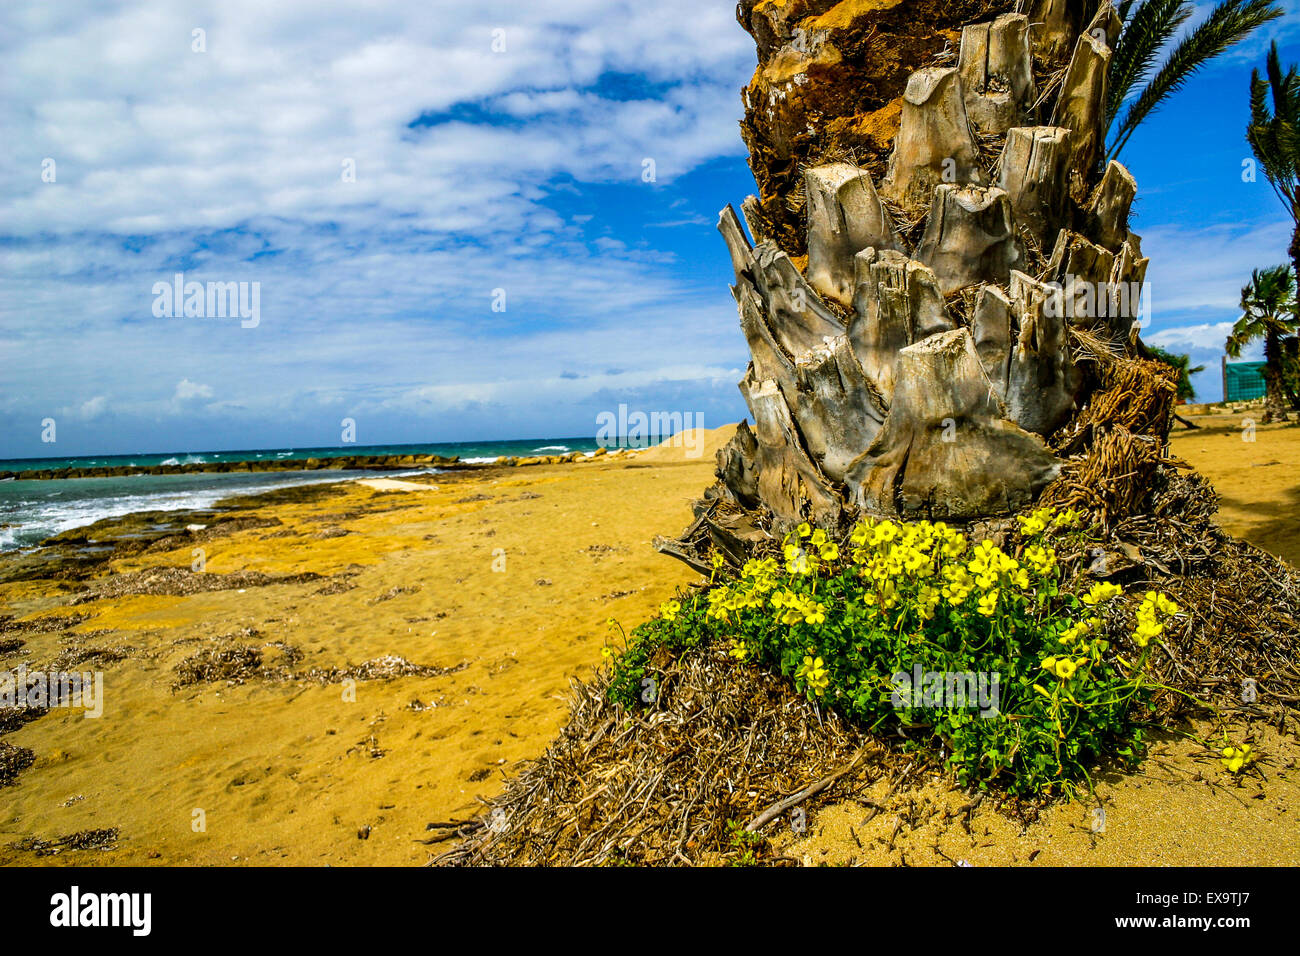 Palm Tree And Yellow Flowers In Cyprus Stock Photo 85039423 Alamy